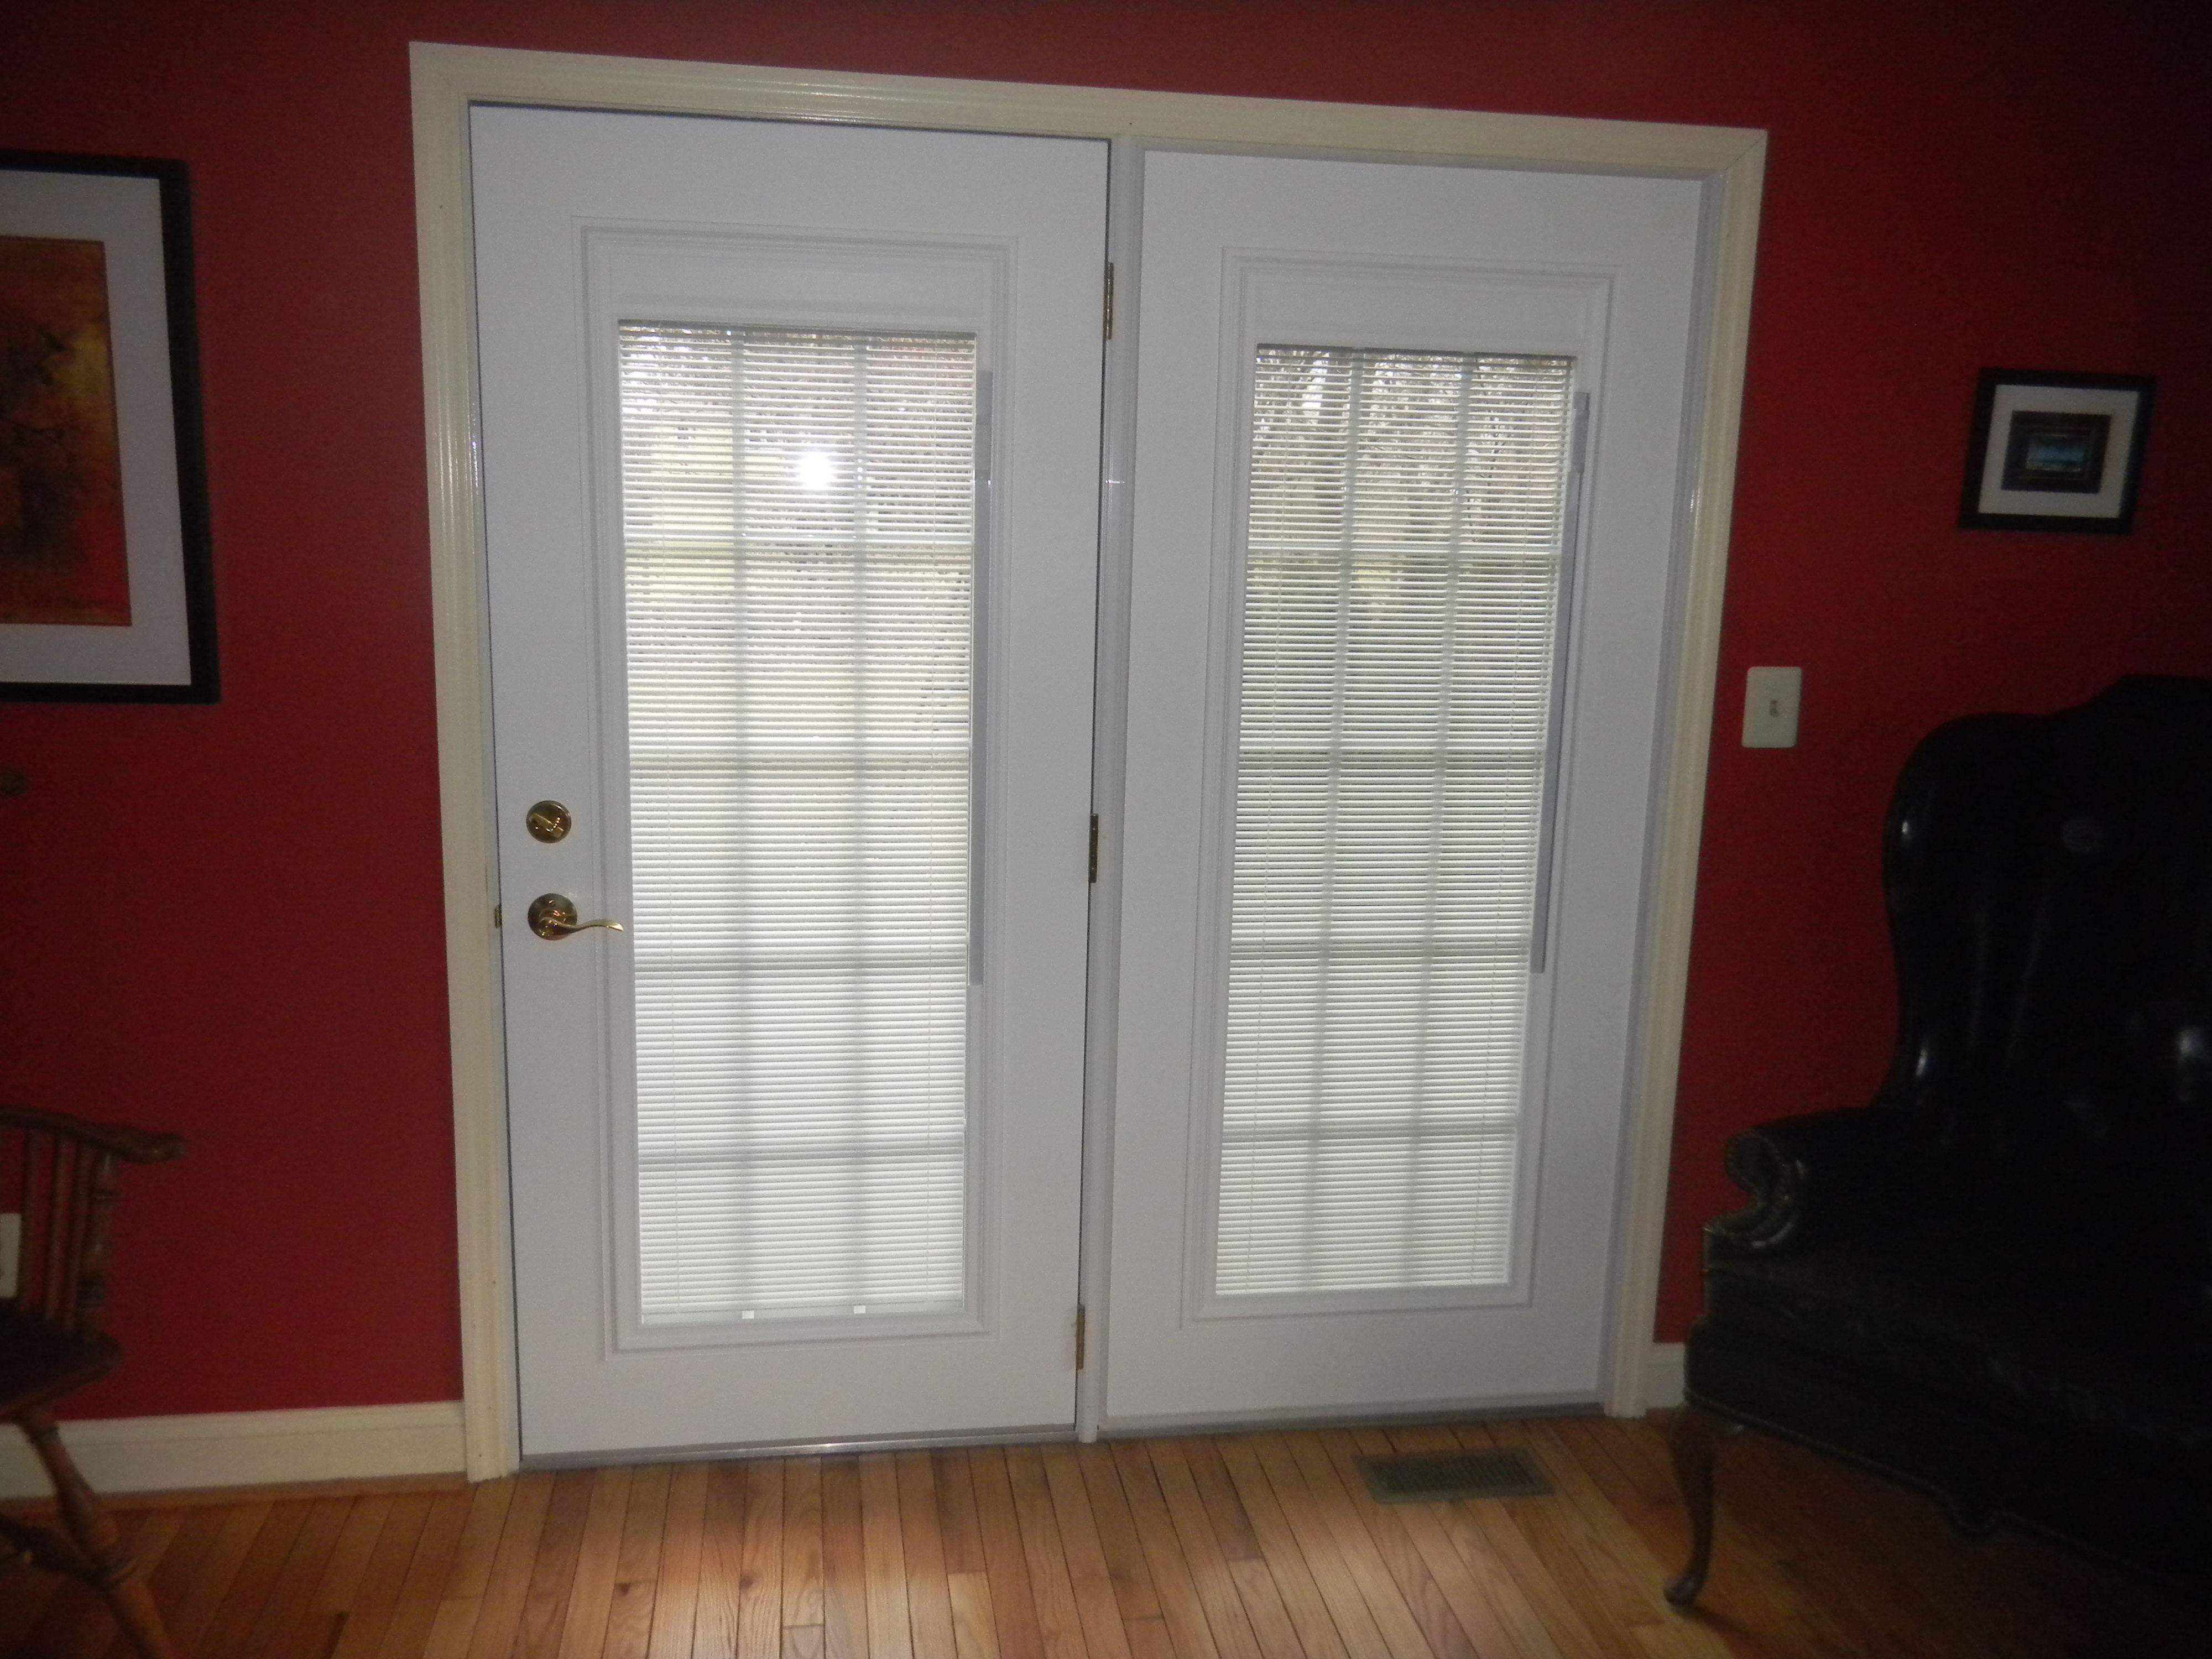 Steel Entry Doors With Blinds Between The Glass Panes - Patio door with blinds inside